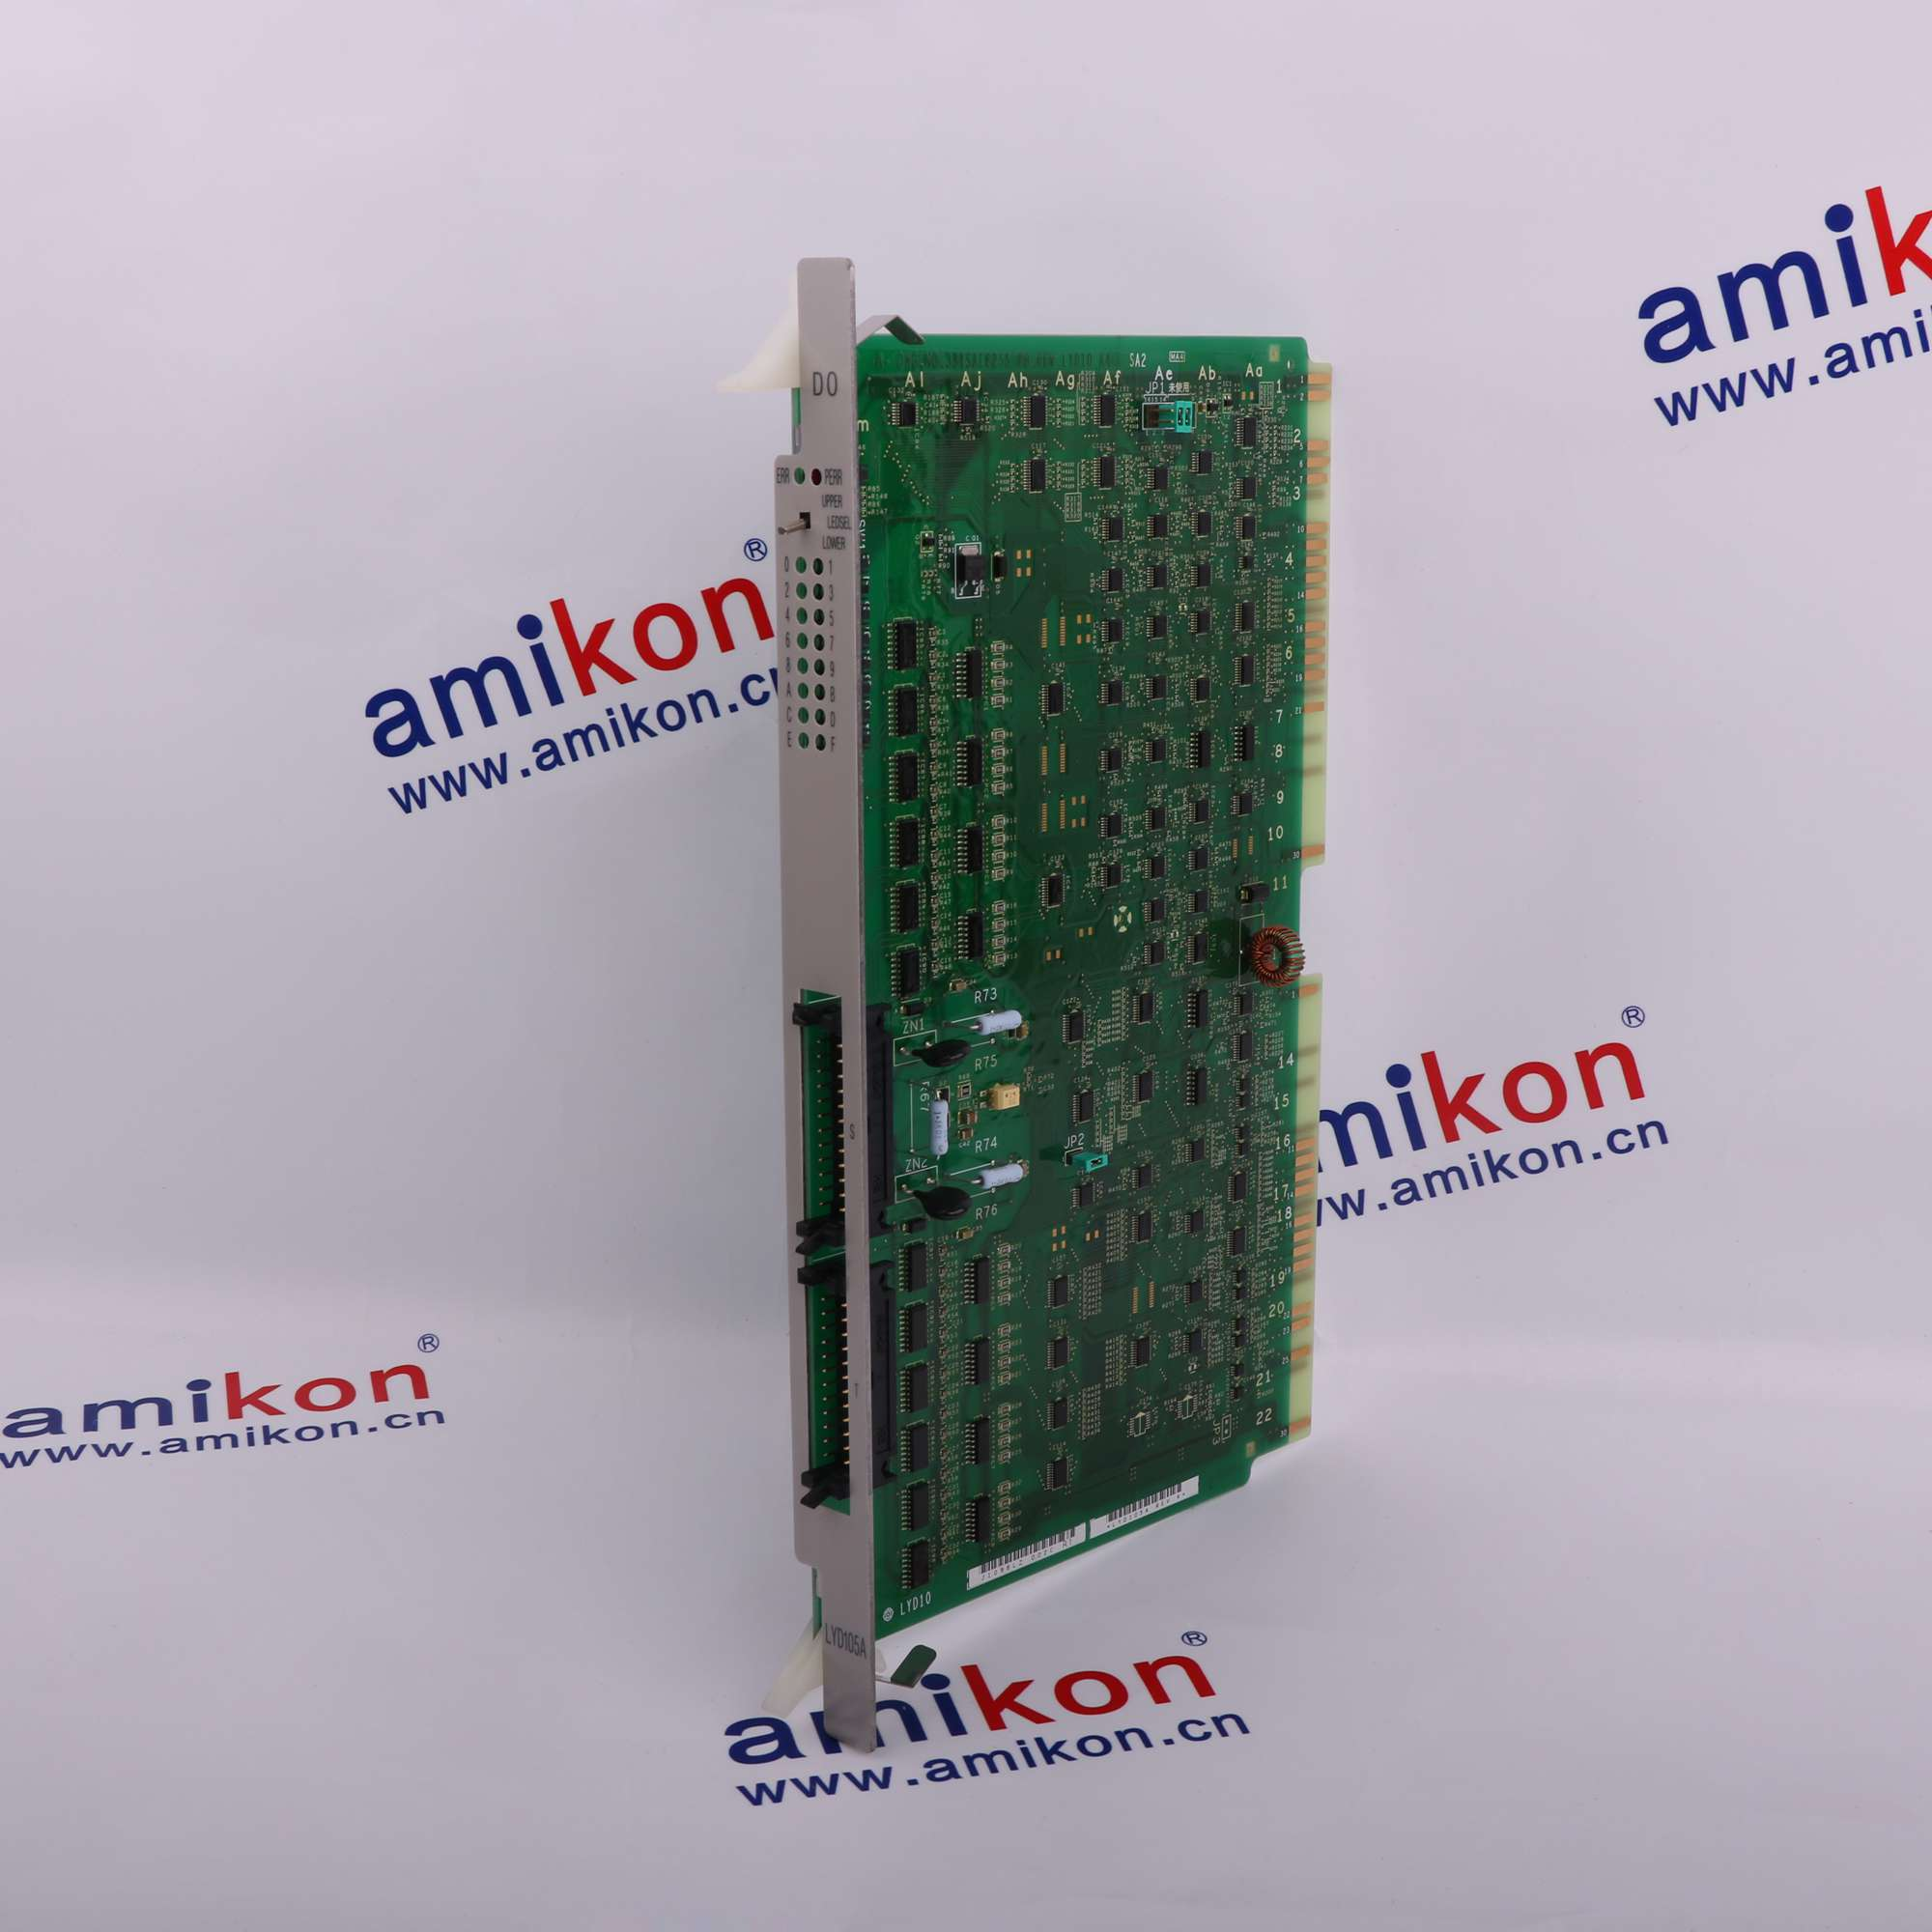 LAM PCB, A4 GAS BOX INTERFACE, VMIVME MODEL 5530S 810-077433-002